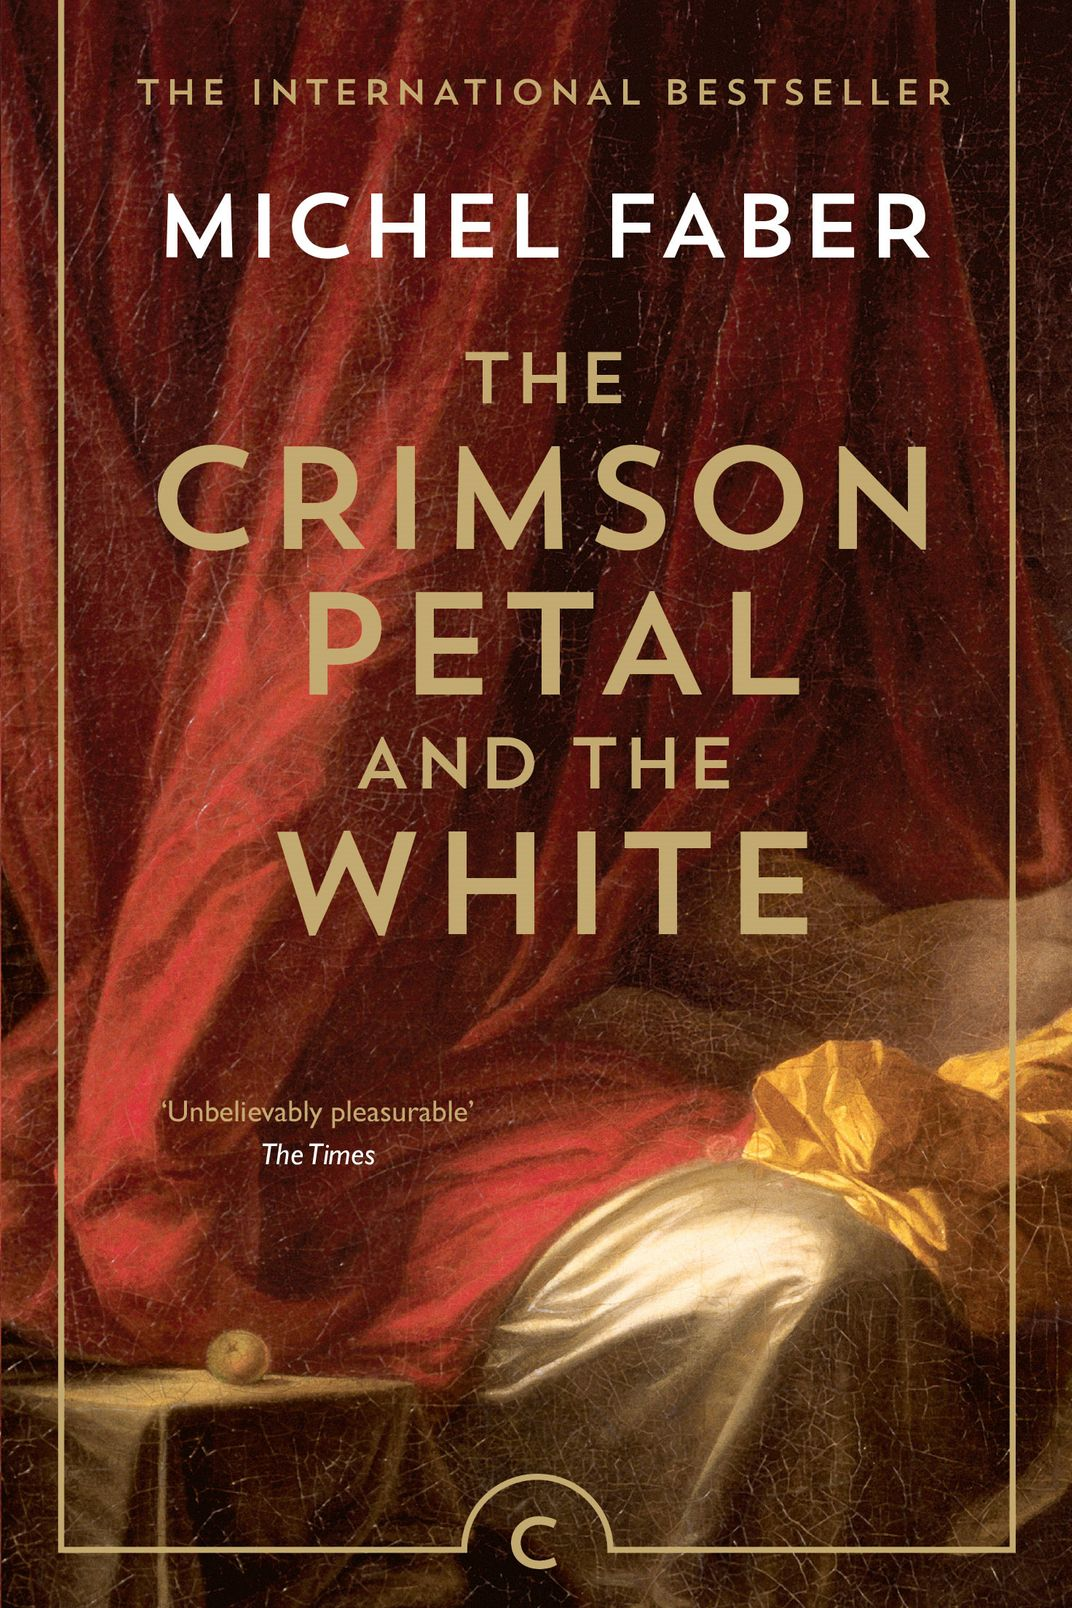 <em>The Crimson Petal and the White</em>, by Michel Faber